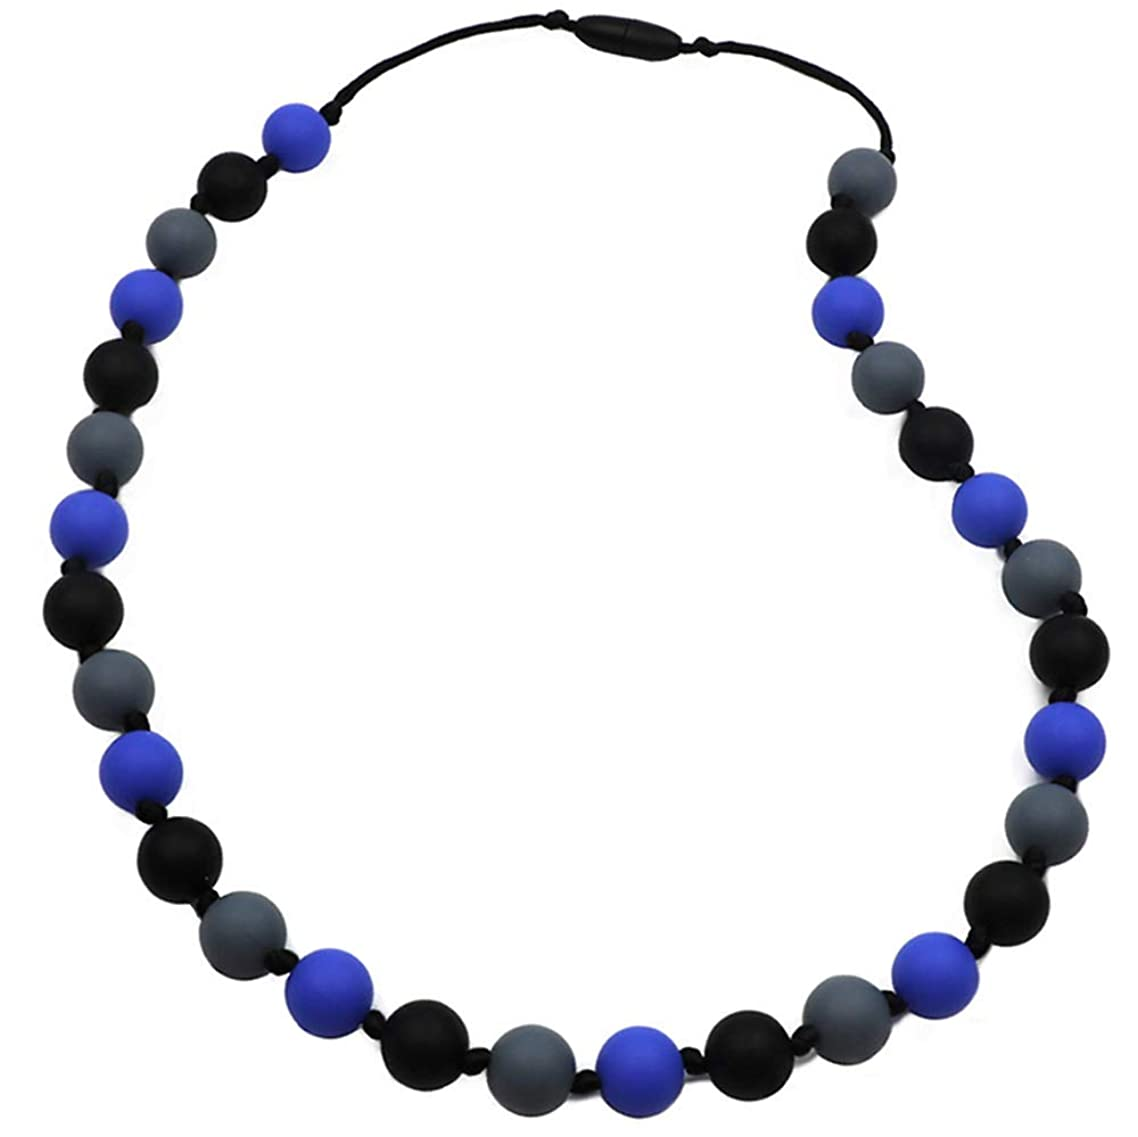 Chew Necklace for Sensory, Oral Motor Aide Autism Chewable Jewelry for Boys Girls - Calms Kids and Reduces Biting/Chewing/Fidgeting Silicone Chewy Toys